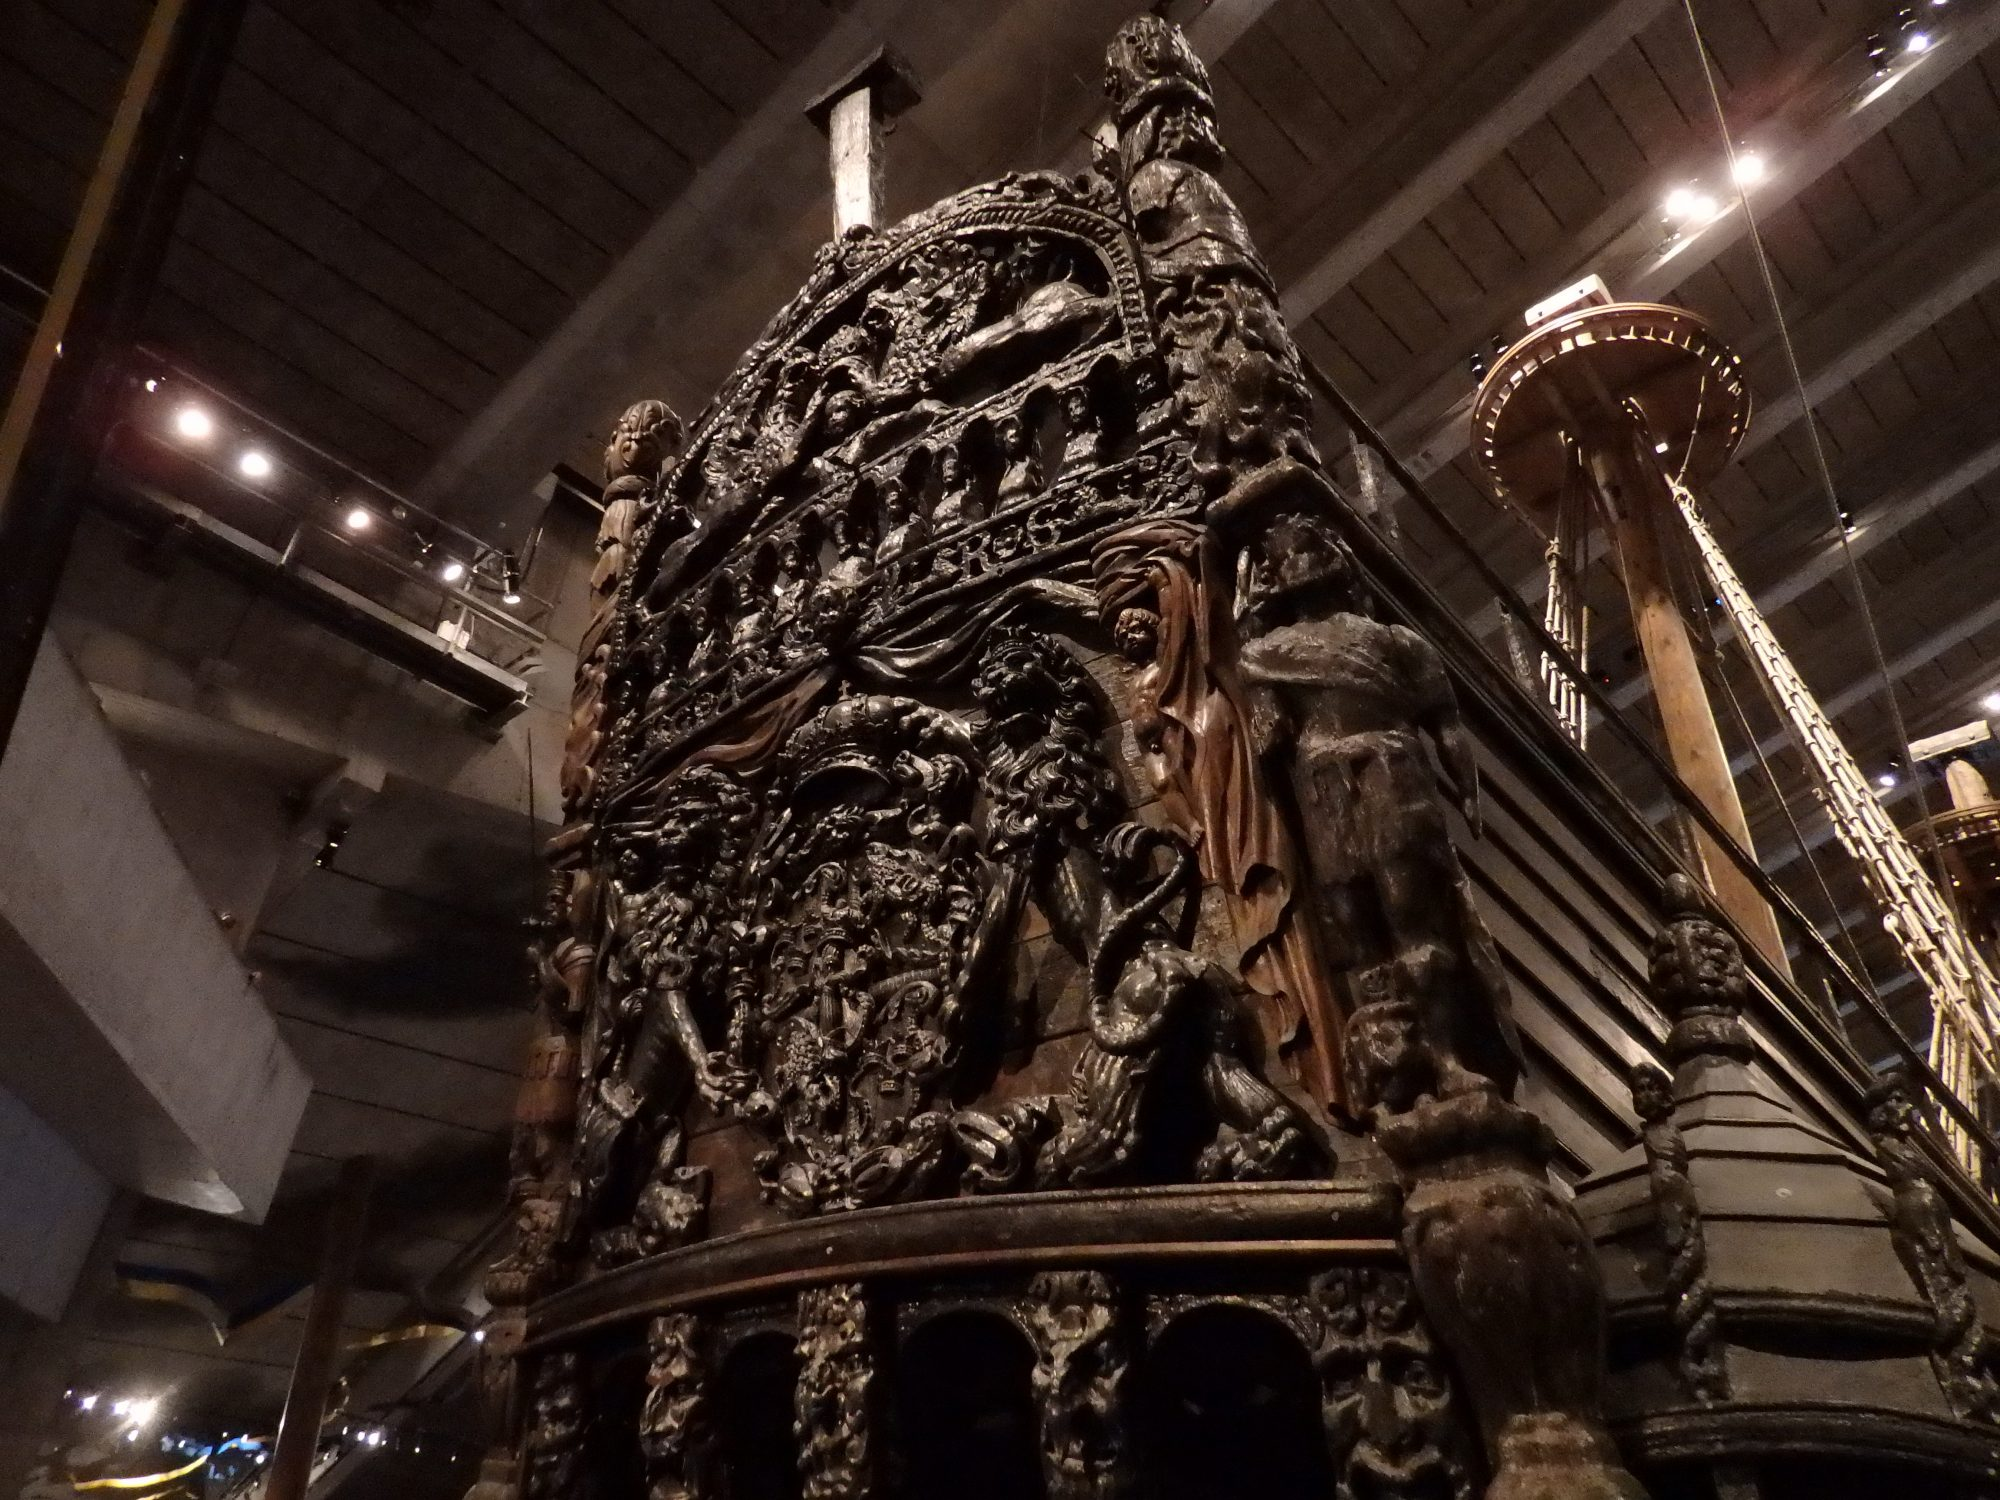 Upper part of the stern of the Vasa: Stockholm, Sweden